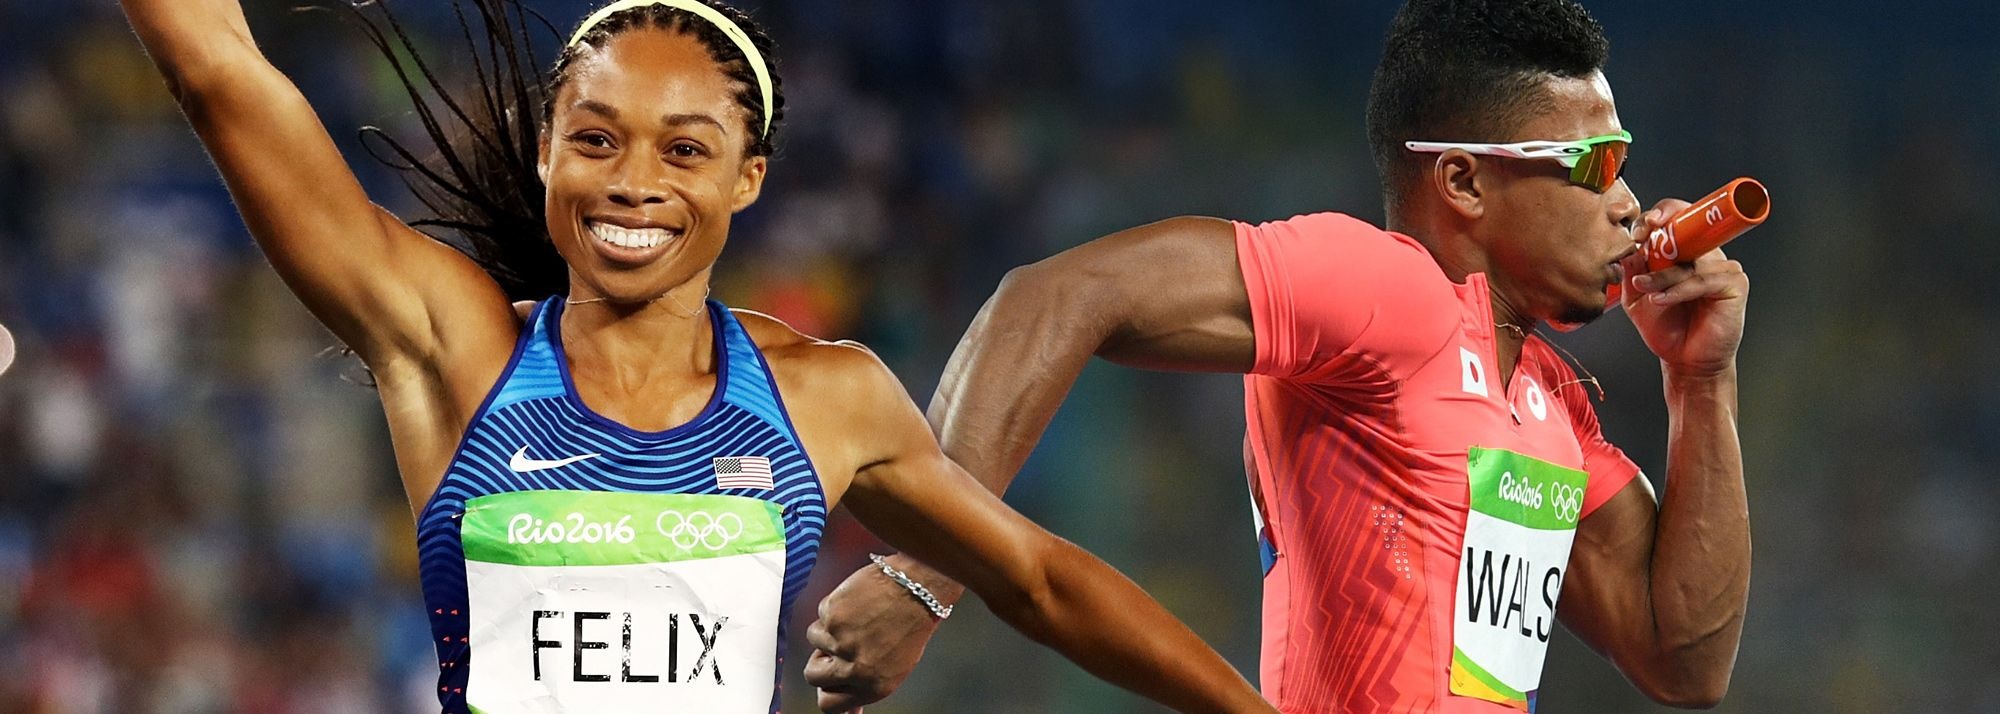 Tokyo Olympics preview: 4x400m relays | PREVIEWS | World ...